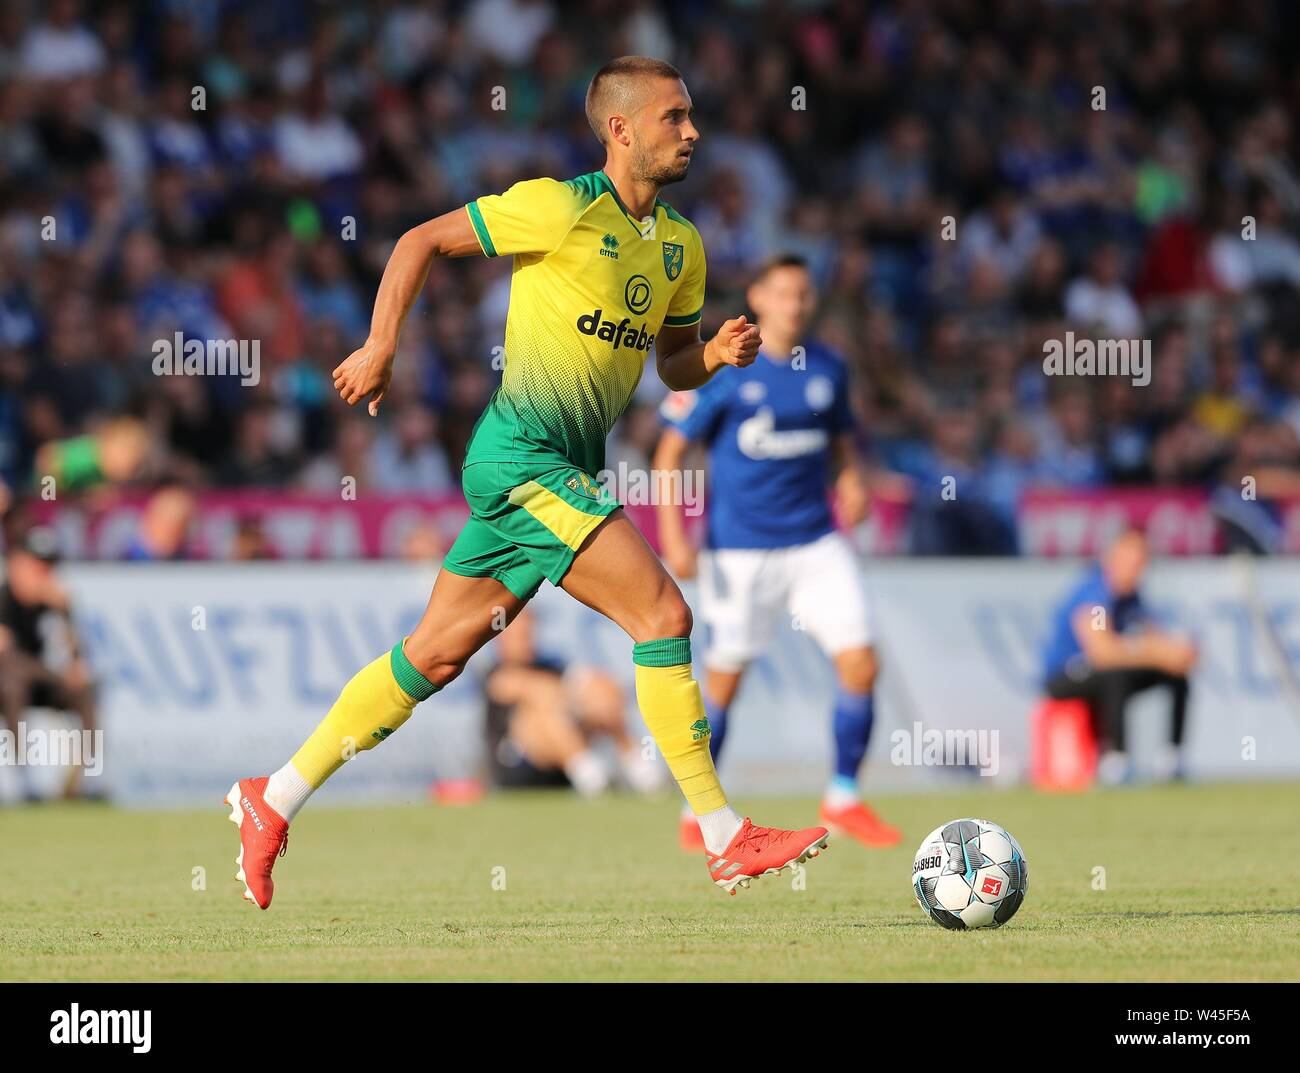 Lotte, Deutschland. 19th July, 2019. firo: 19.07.2019, football, 1.Bundesliga, season 2019/2020, friendly match, FC Schalke 04 - Norwich City Moritz LEITNER, Norwich, single action | usage worldwide Credit: dpa/Alamy Live News - Stock Image